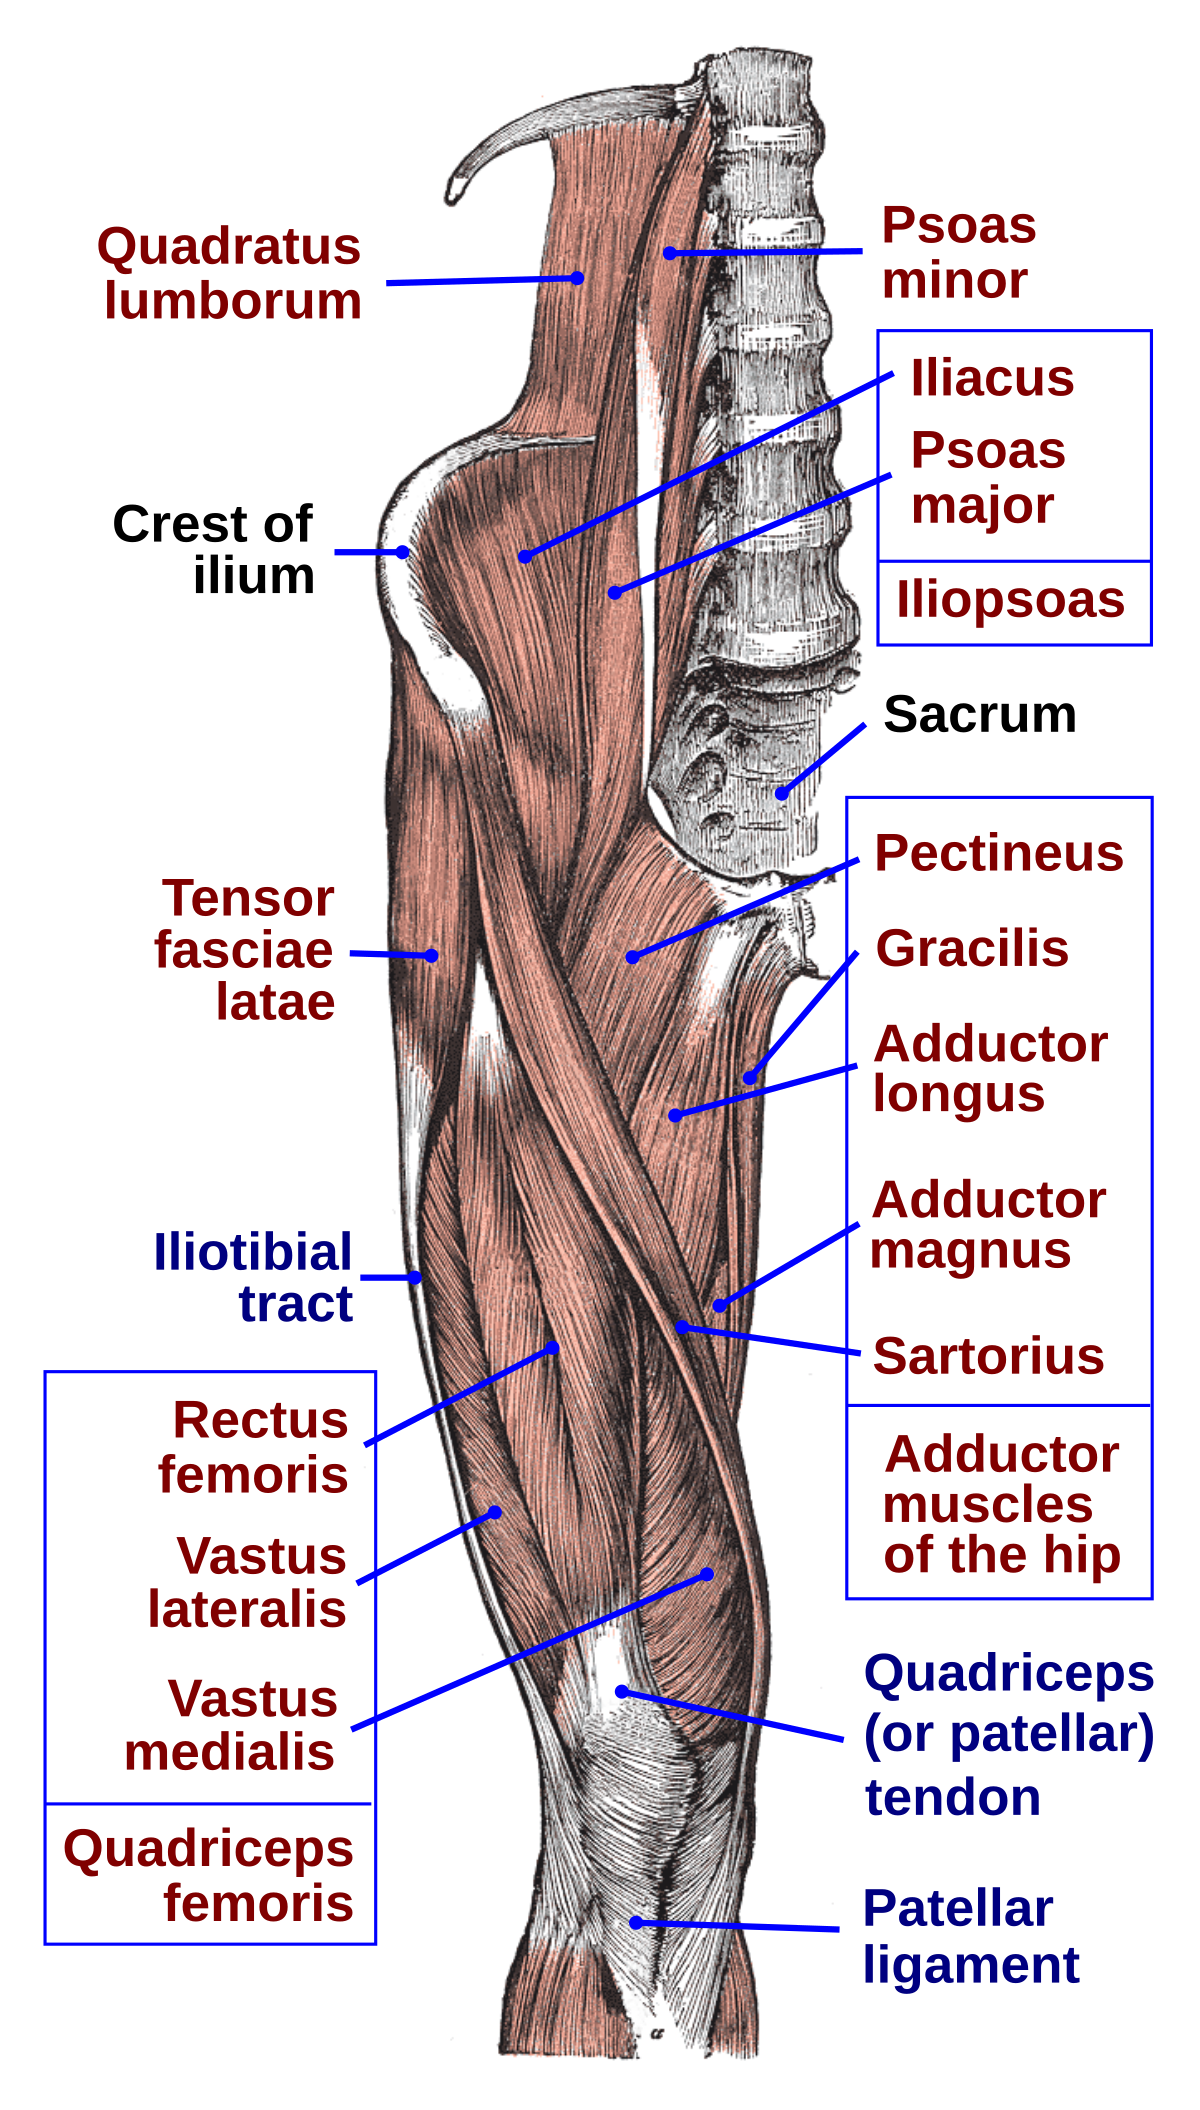 Anatomy of the hip. Muscles labeled